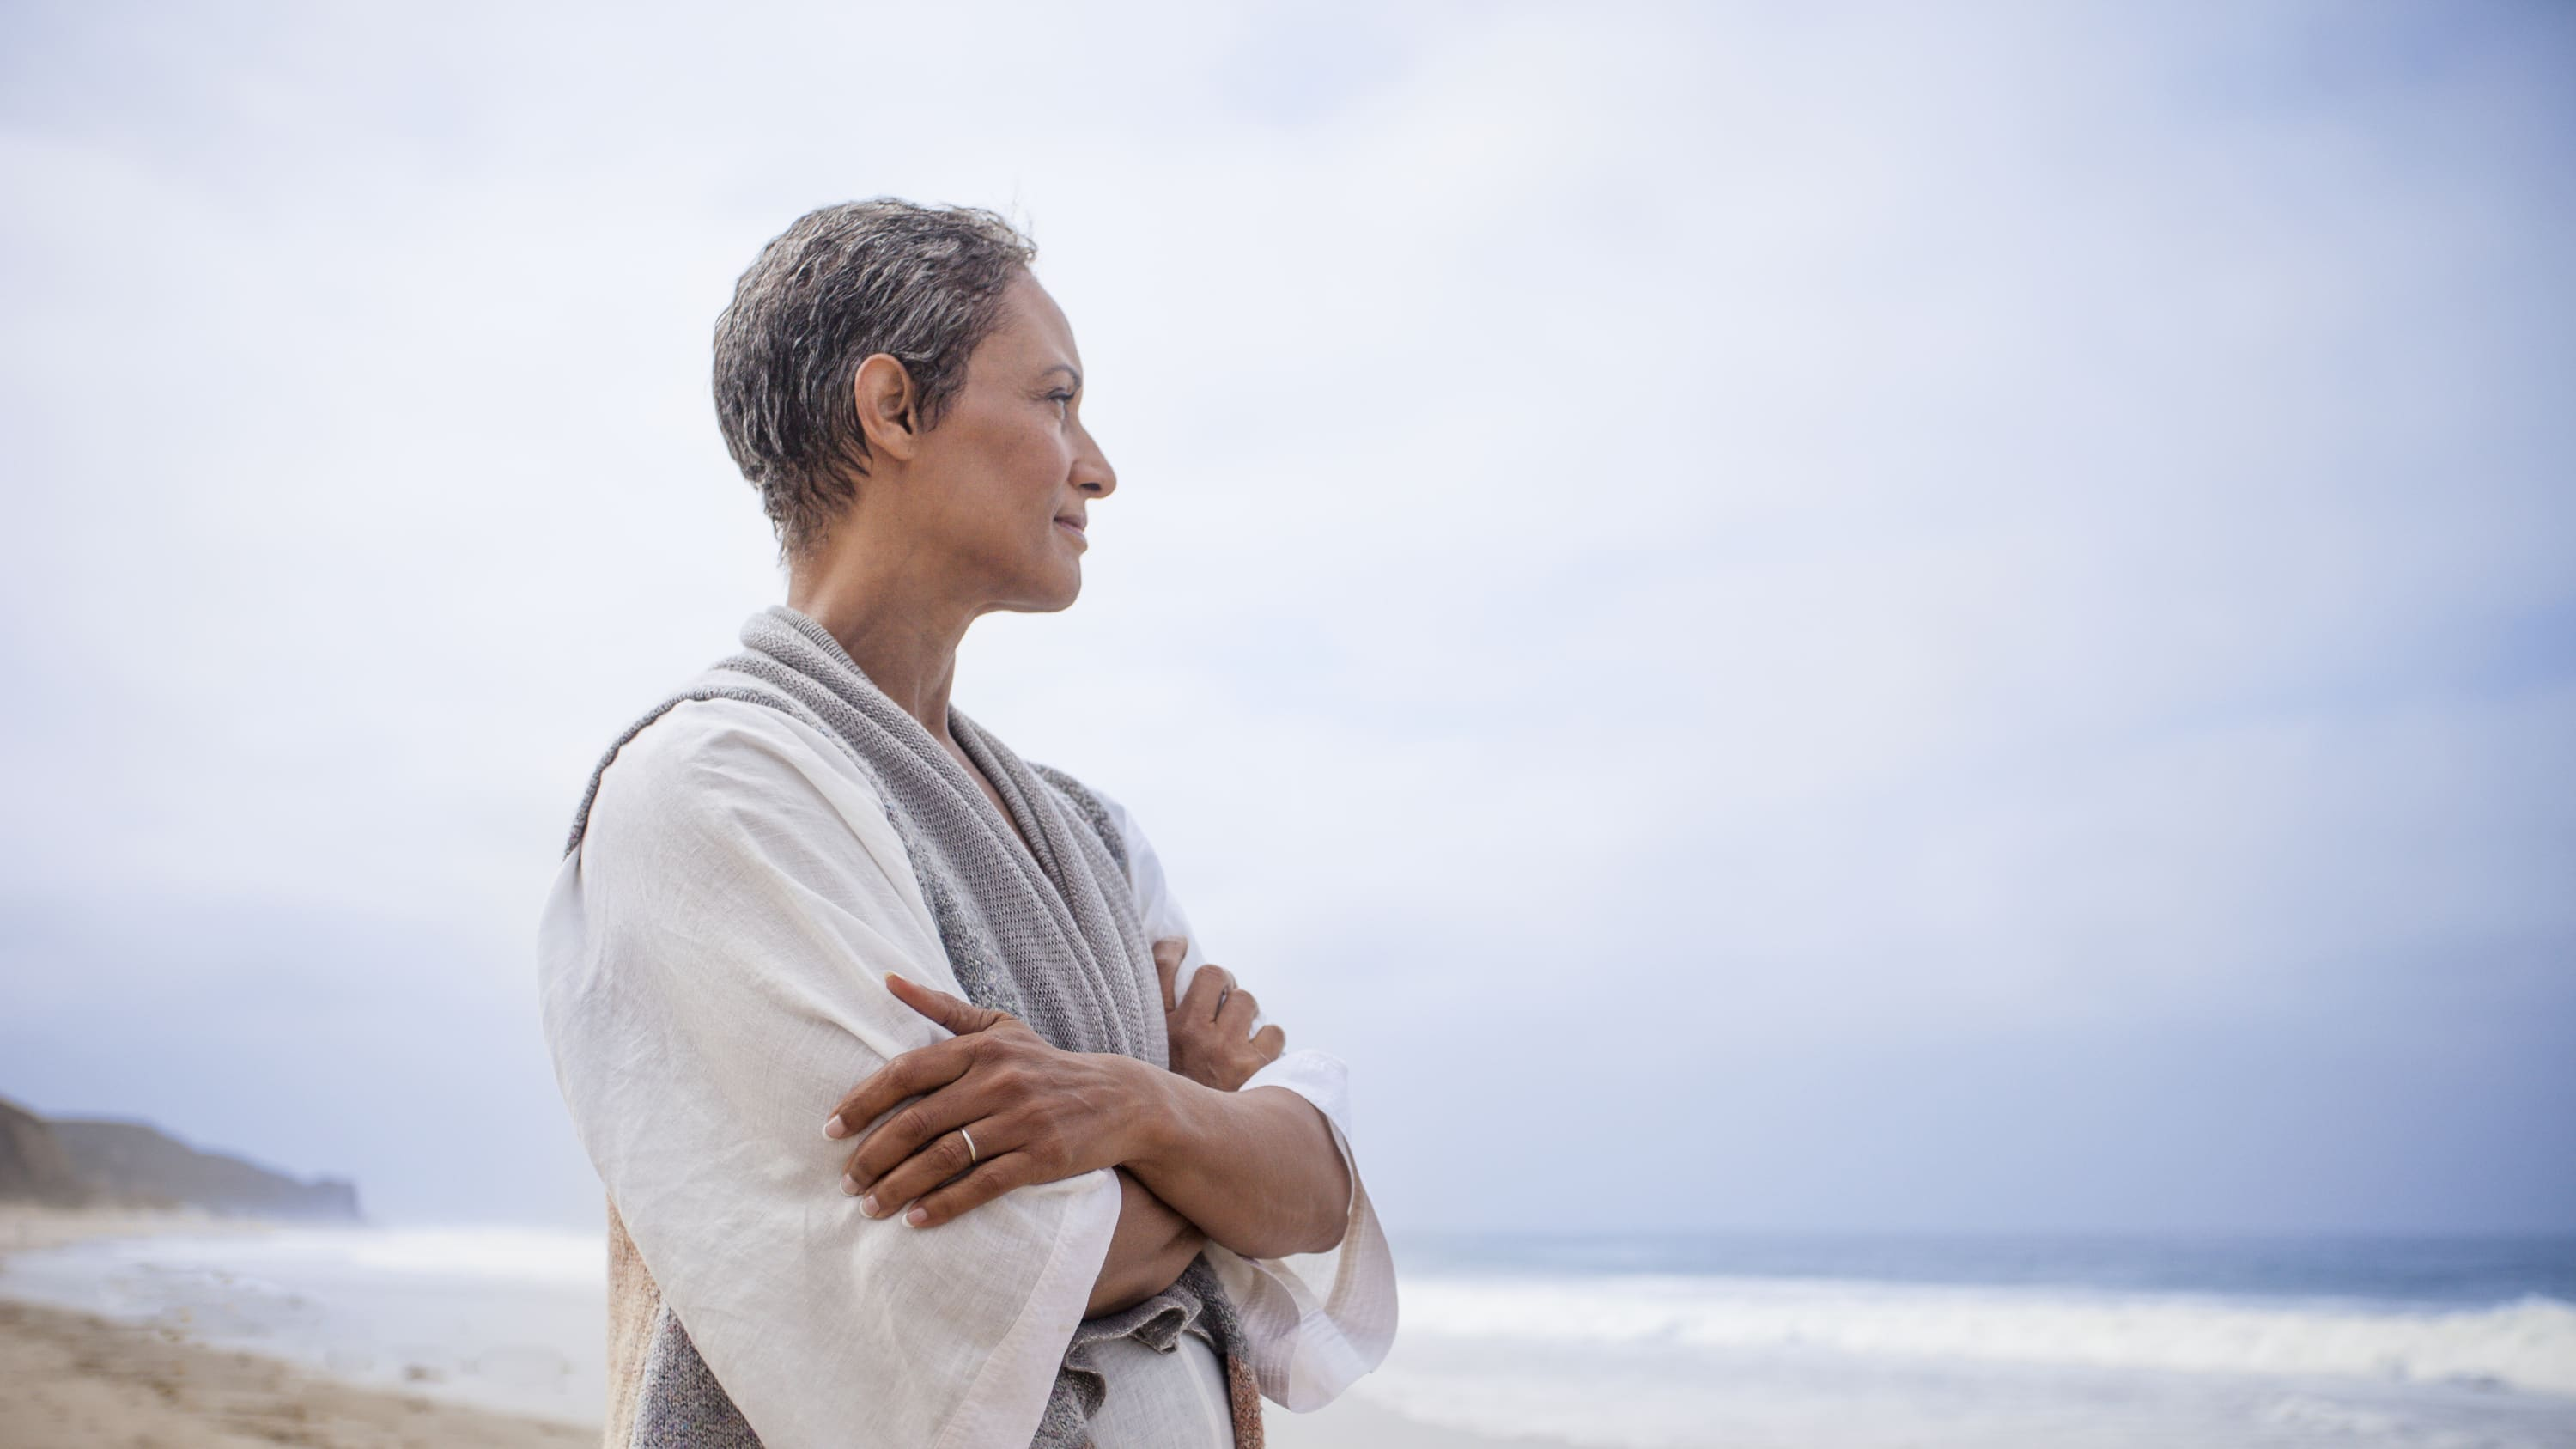 A woman standing on a beach looks out on the ocean, possibly thinking about pancreatic surgery.